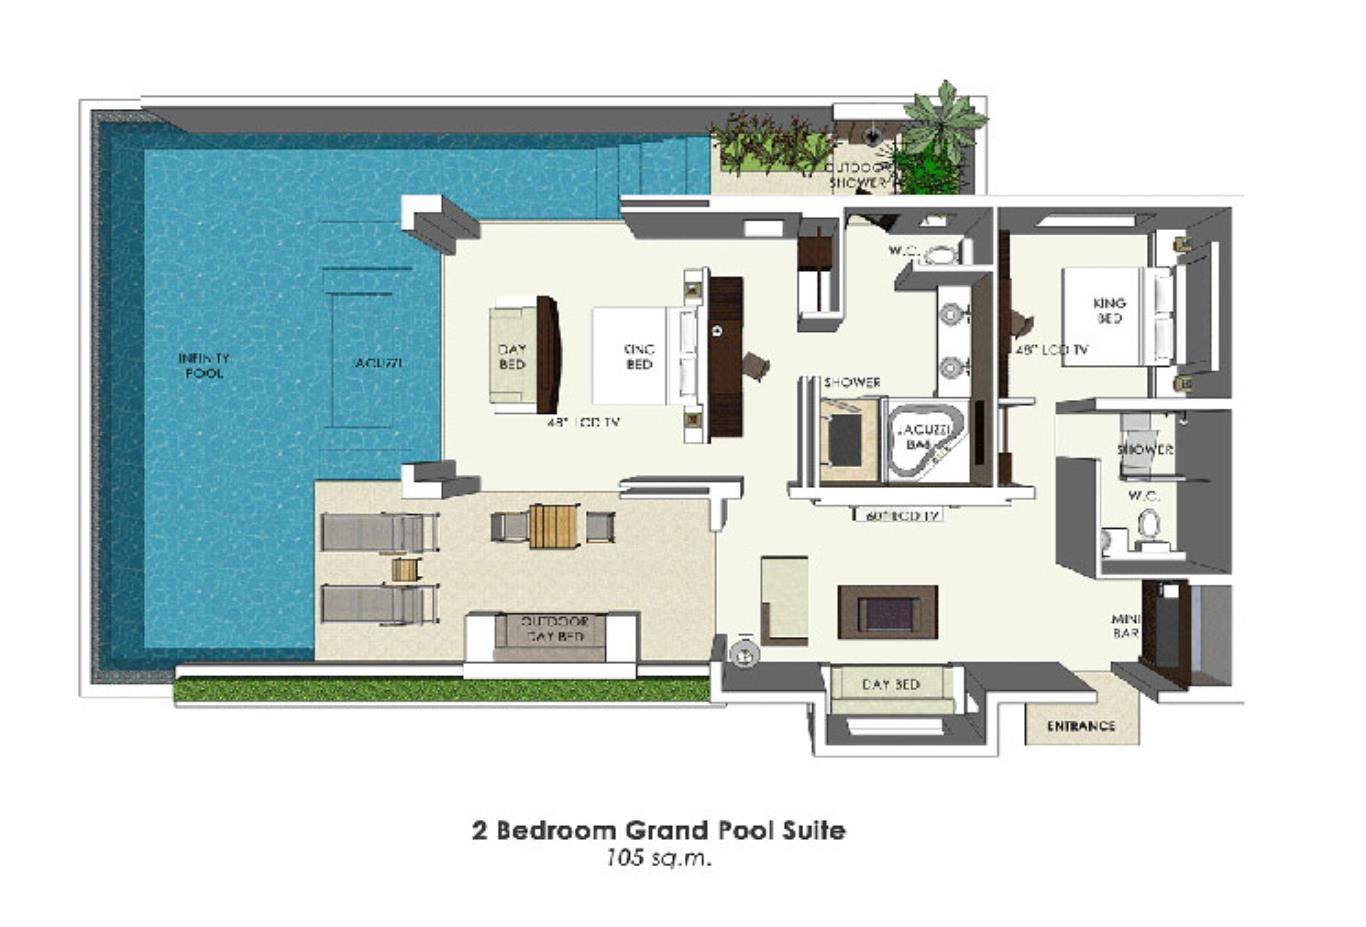 2 Bedroom Grand Pool Suite floorplan